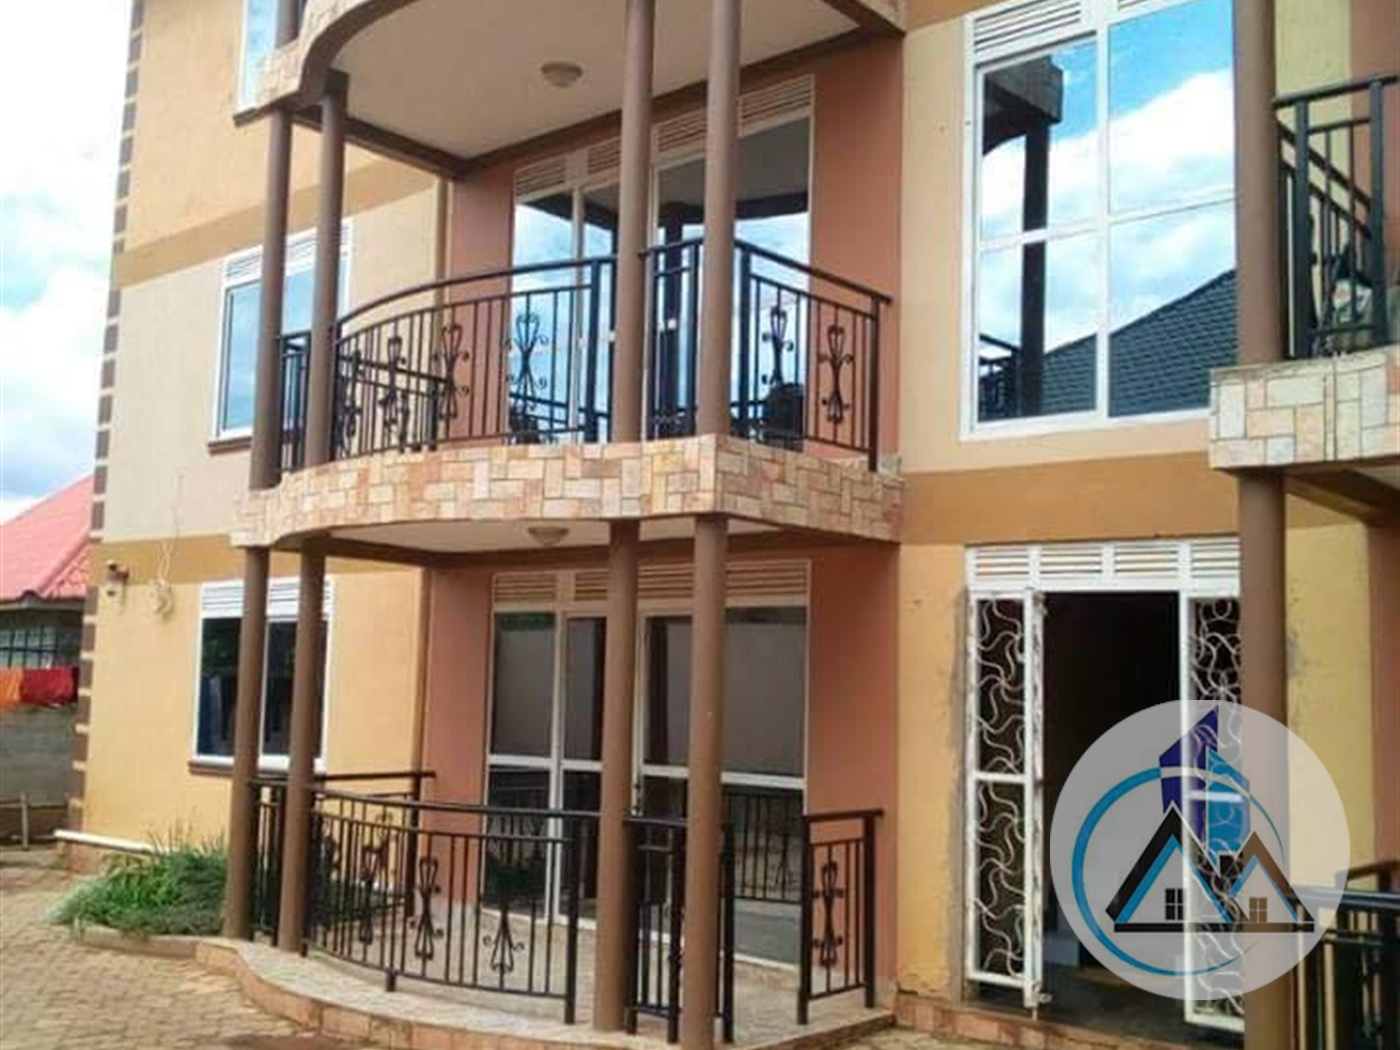 Pleasant 2 Bedroom Apartment For Rent In Namugongo Wakiso Code 30184 Home Interior And Landscaping Pimpapssignezvosmurscom